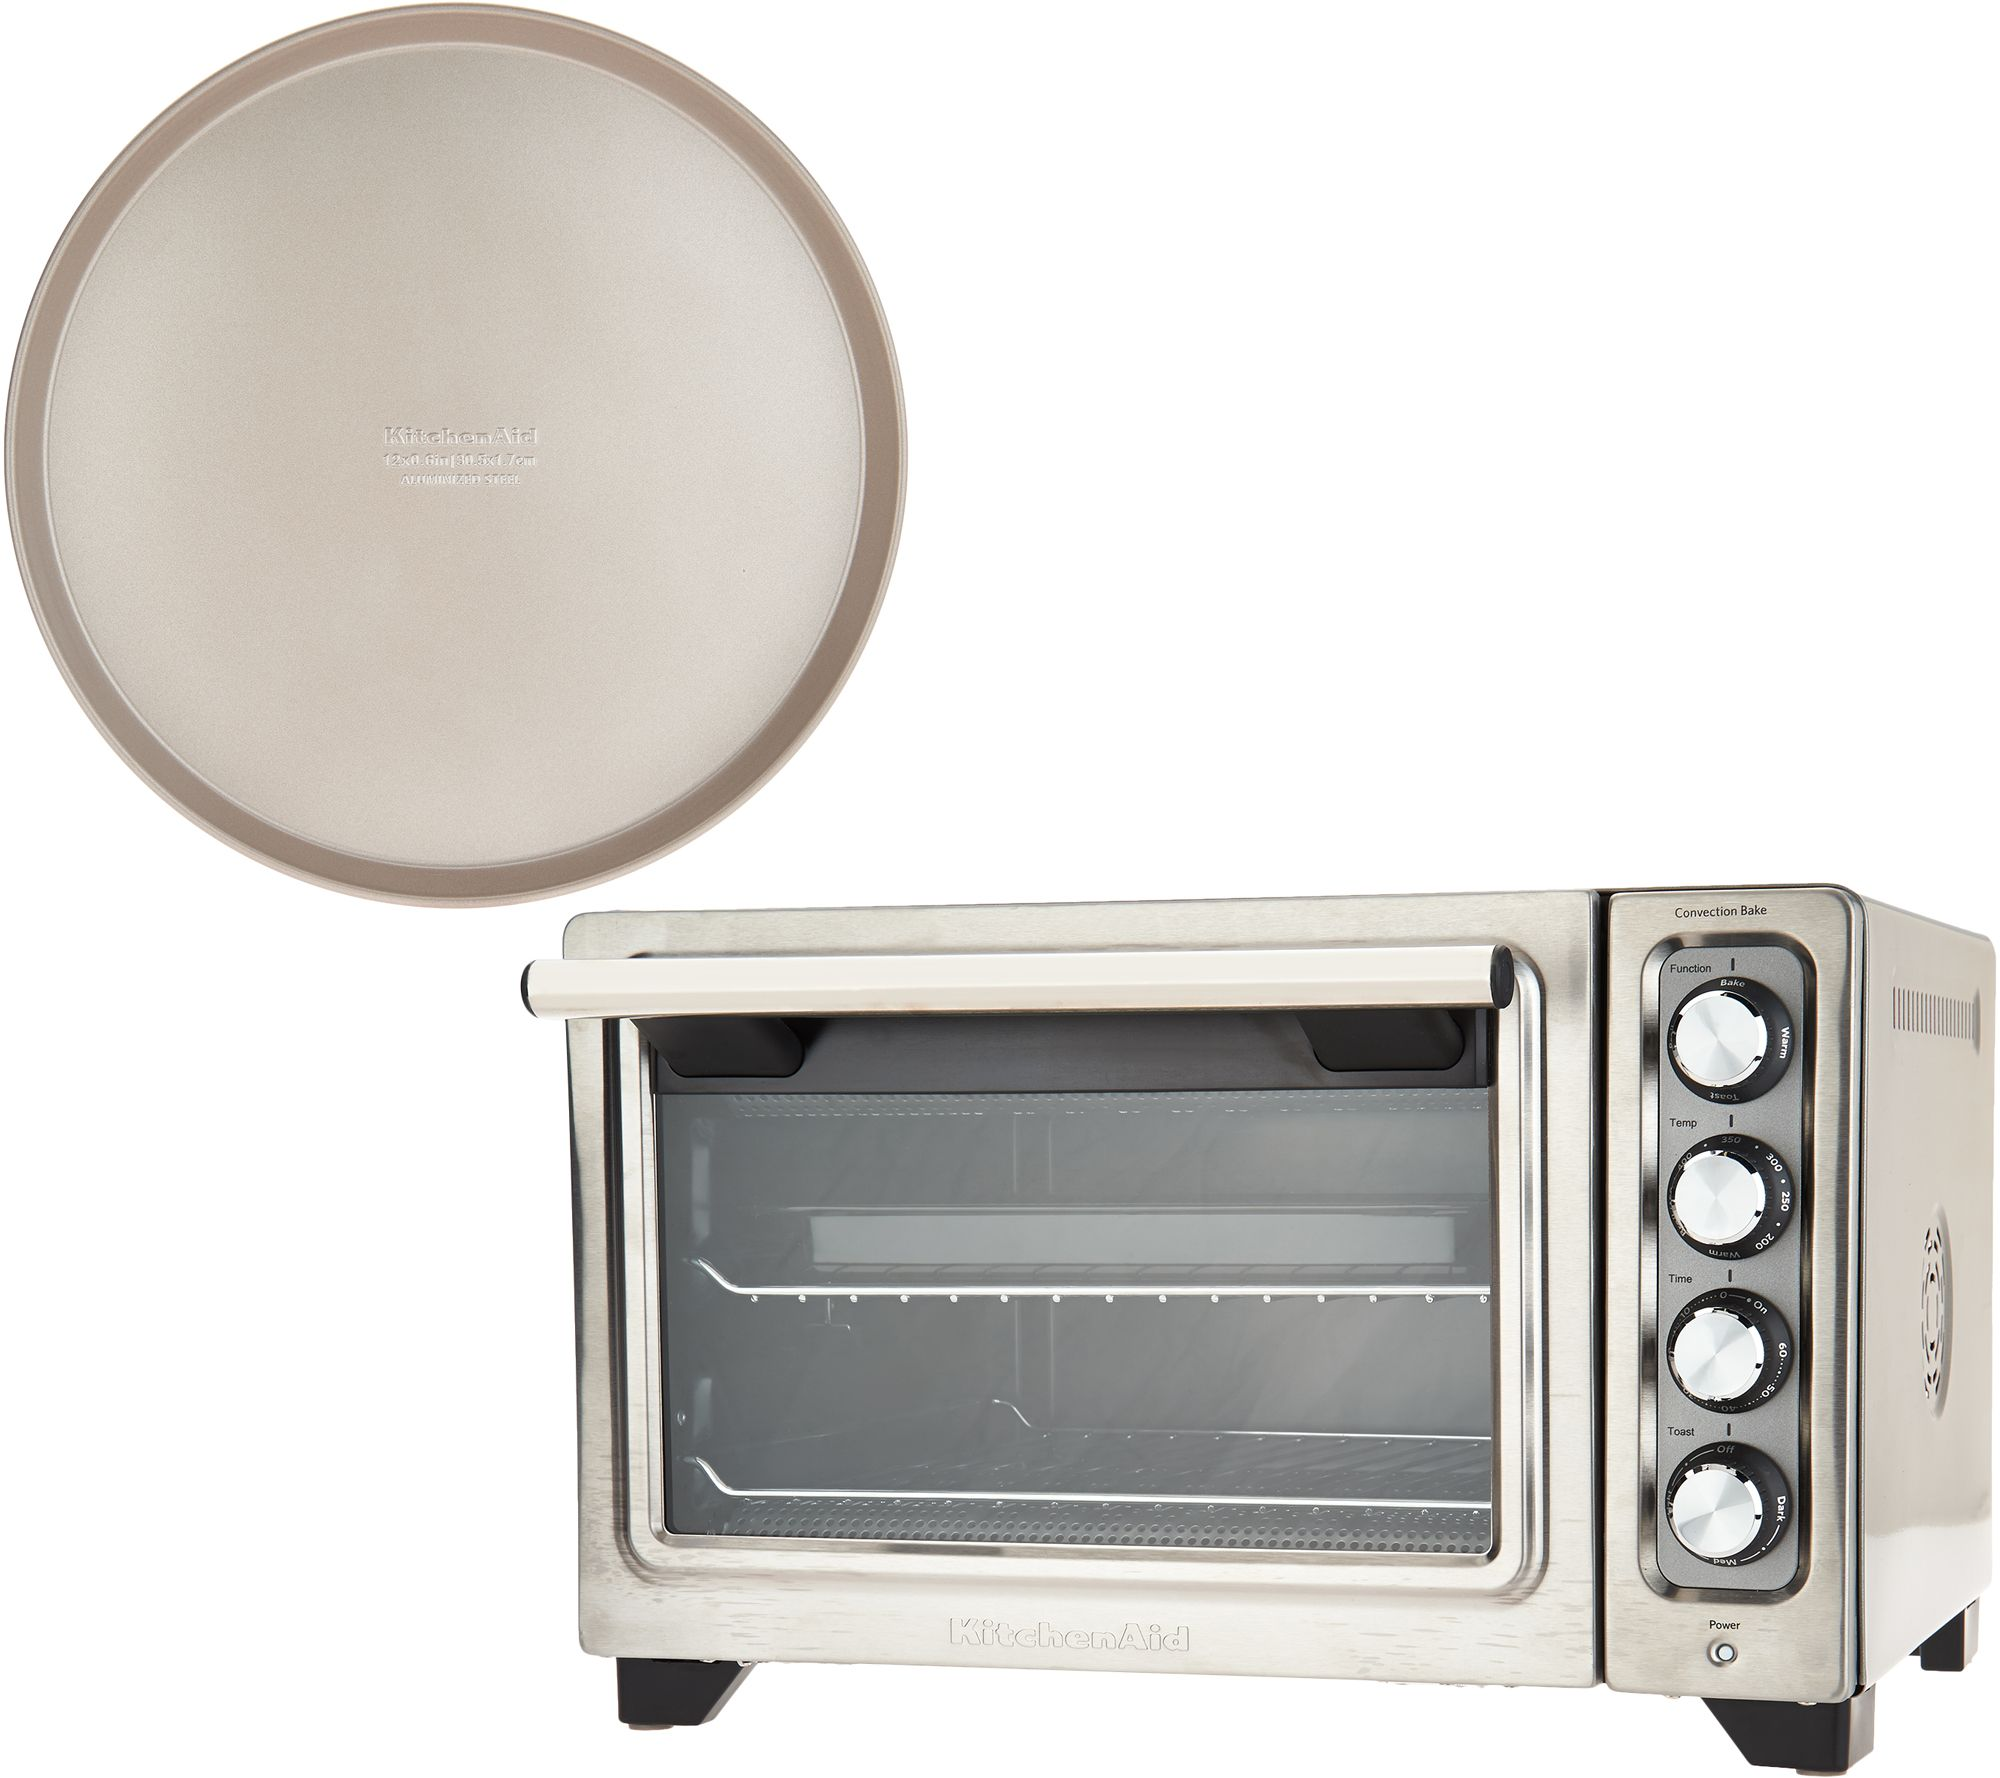 oven stainless buy ca cu best toaster die ft product breville smart convection en canada reviews ovens countertop pro cast